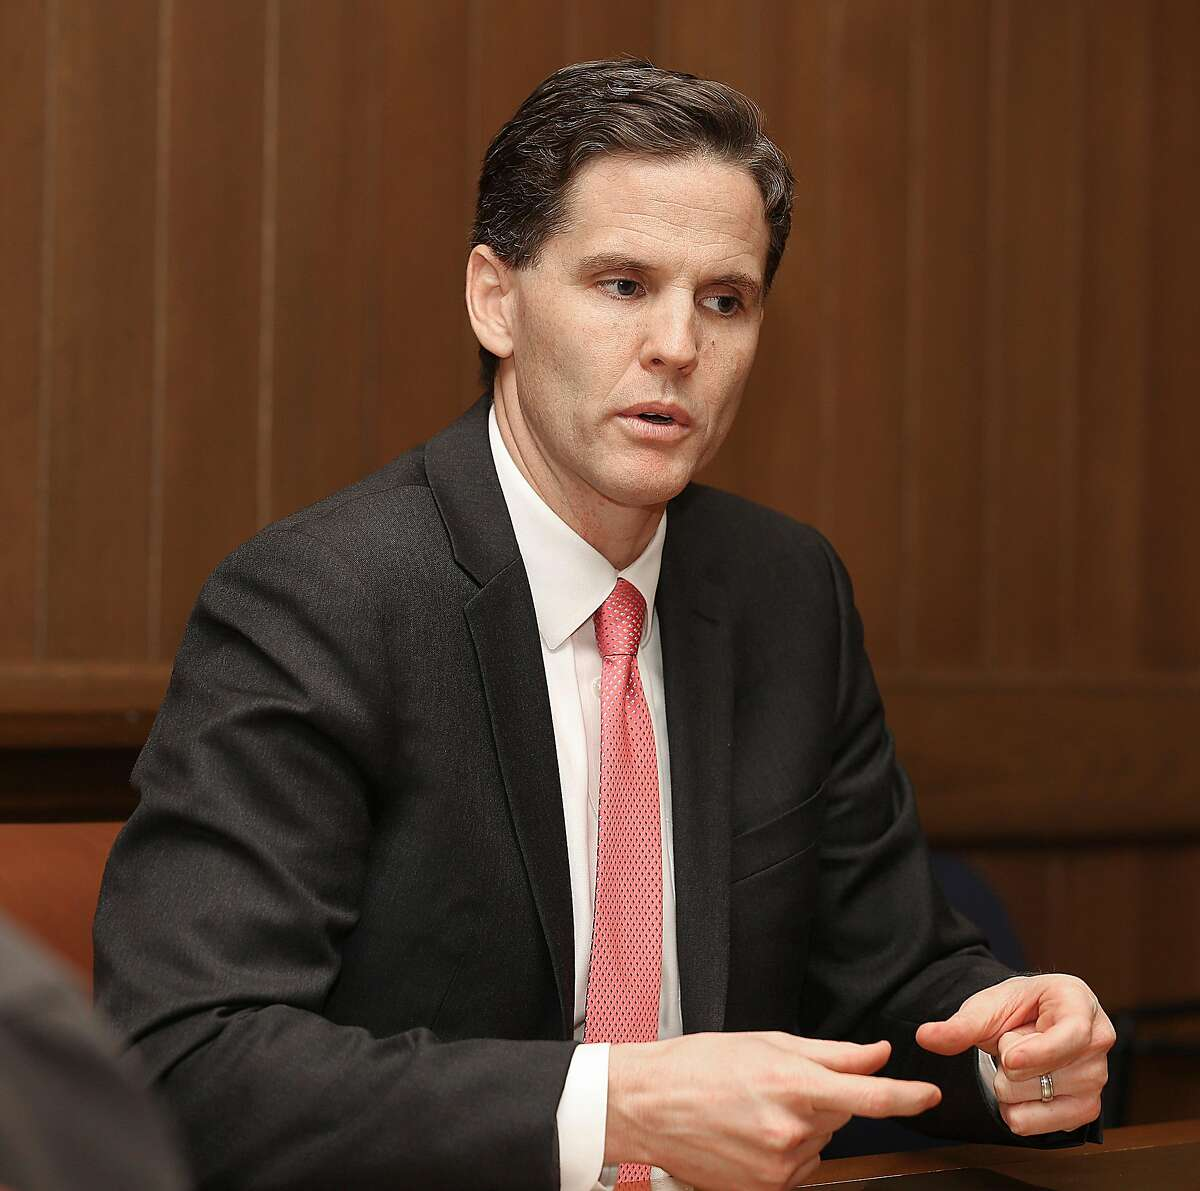 Marshall Tuck, Superintendent of Public Instruction, speaks at the San Francisco Chronicle on Friday, March 23, 2018, in San Francisco, Calif.